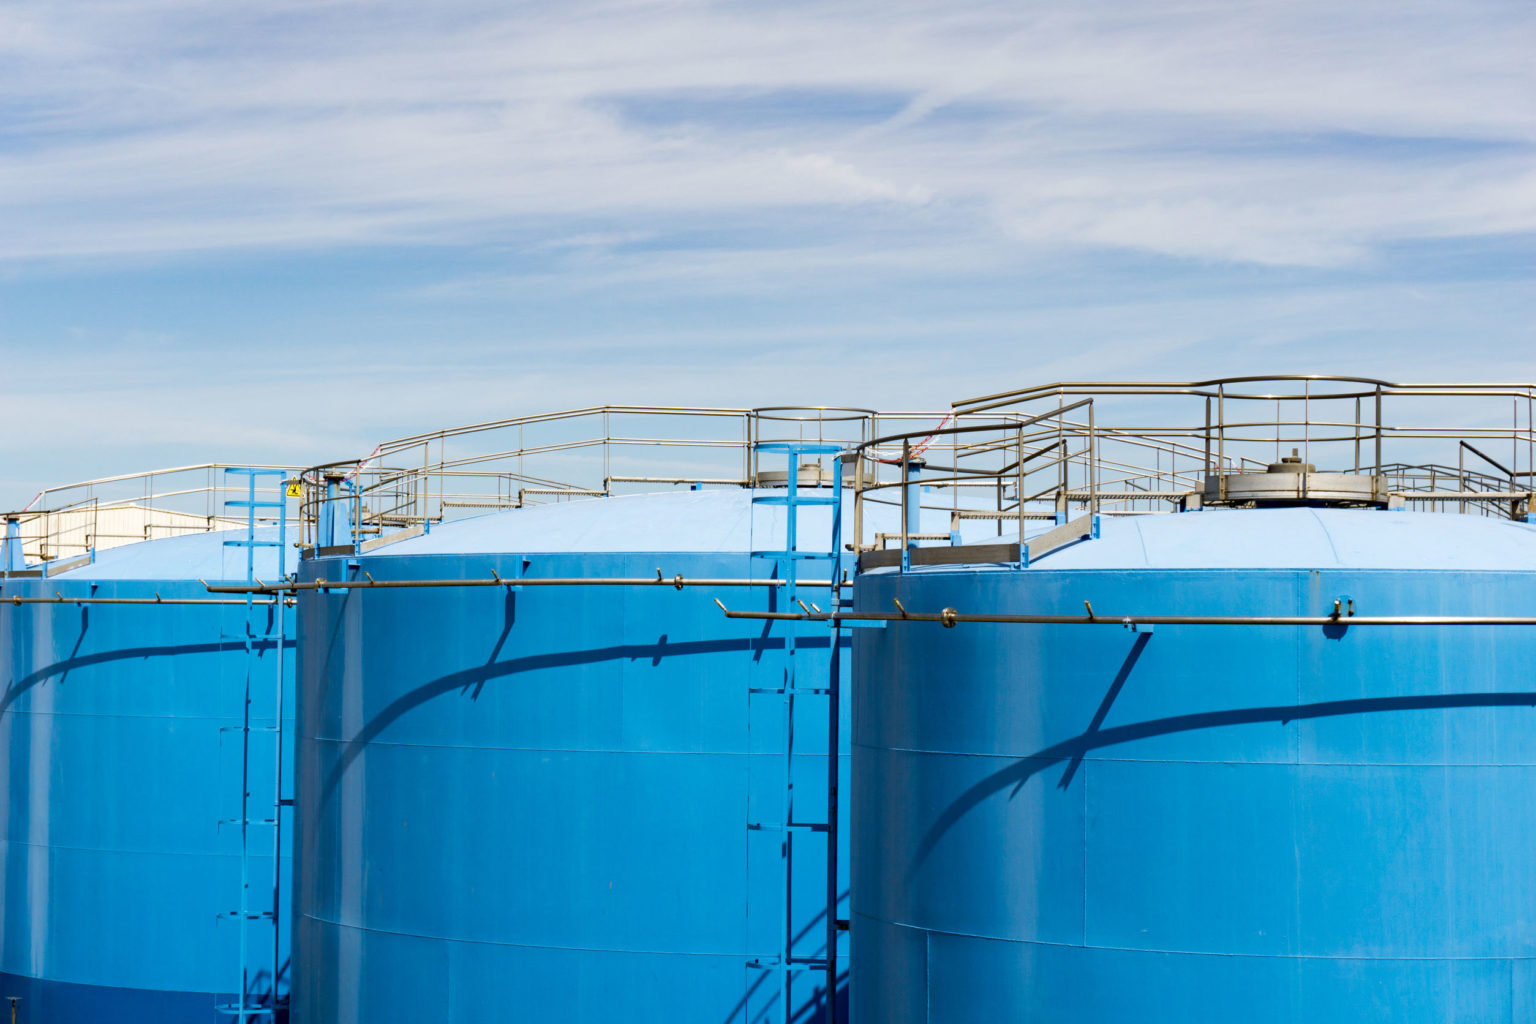 Large Blue Indsutrial Silos Or Storage Tanks For Oil Or Other Li